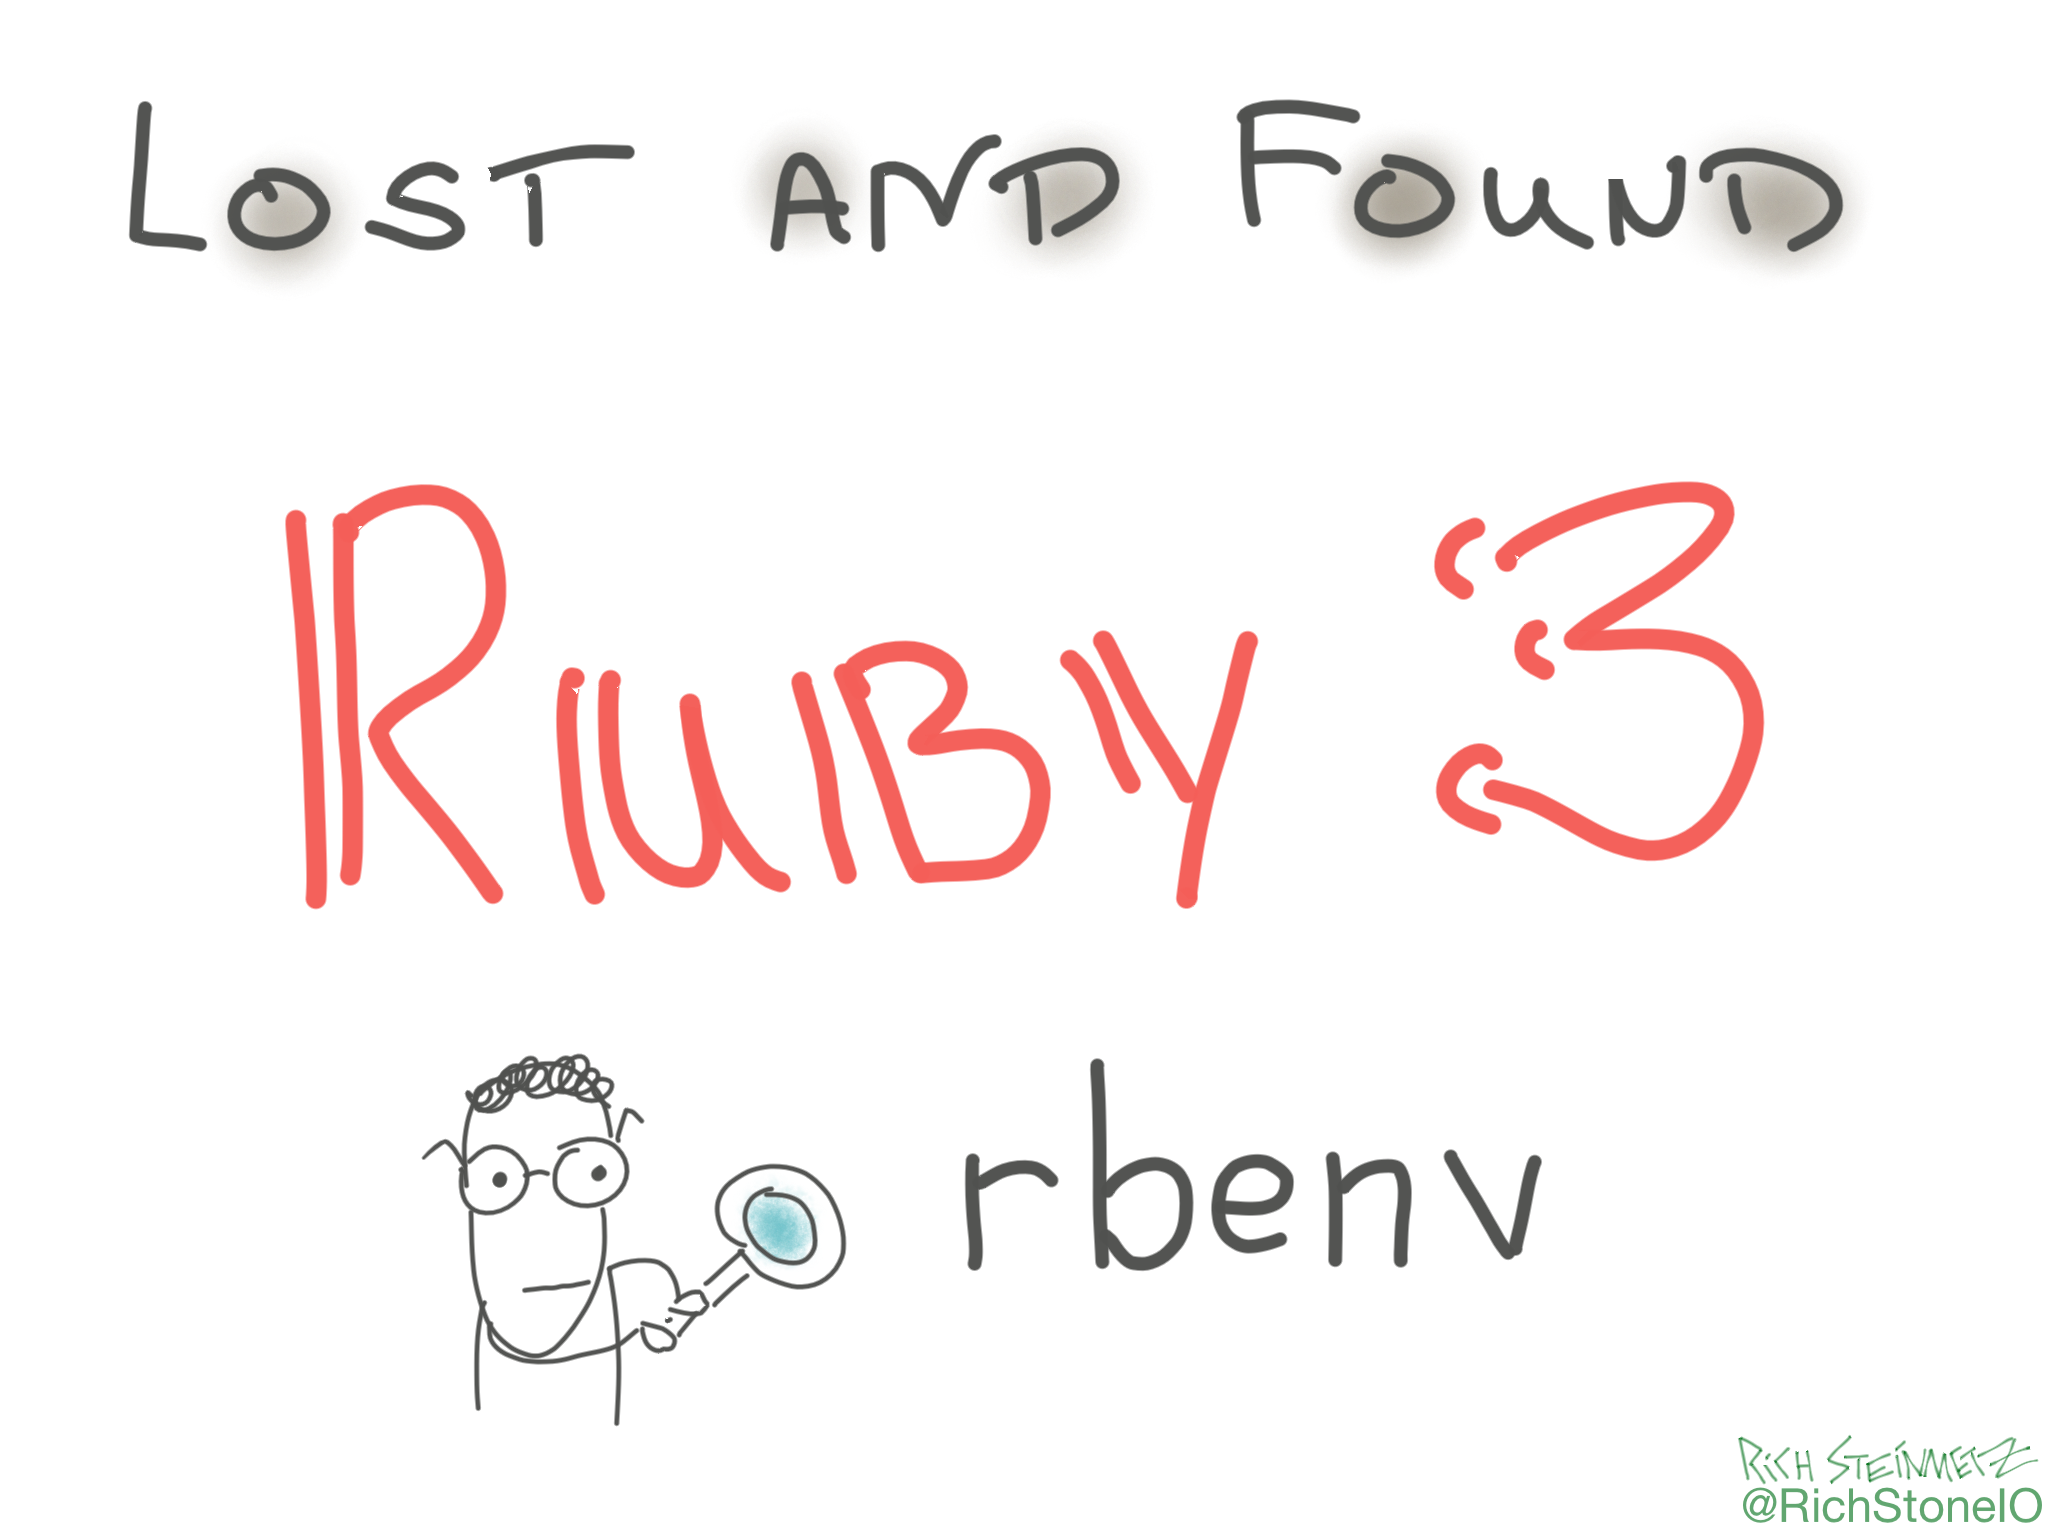 How To Install Ruby 3 With rbenv?